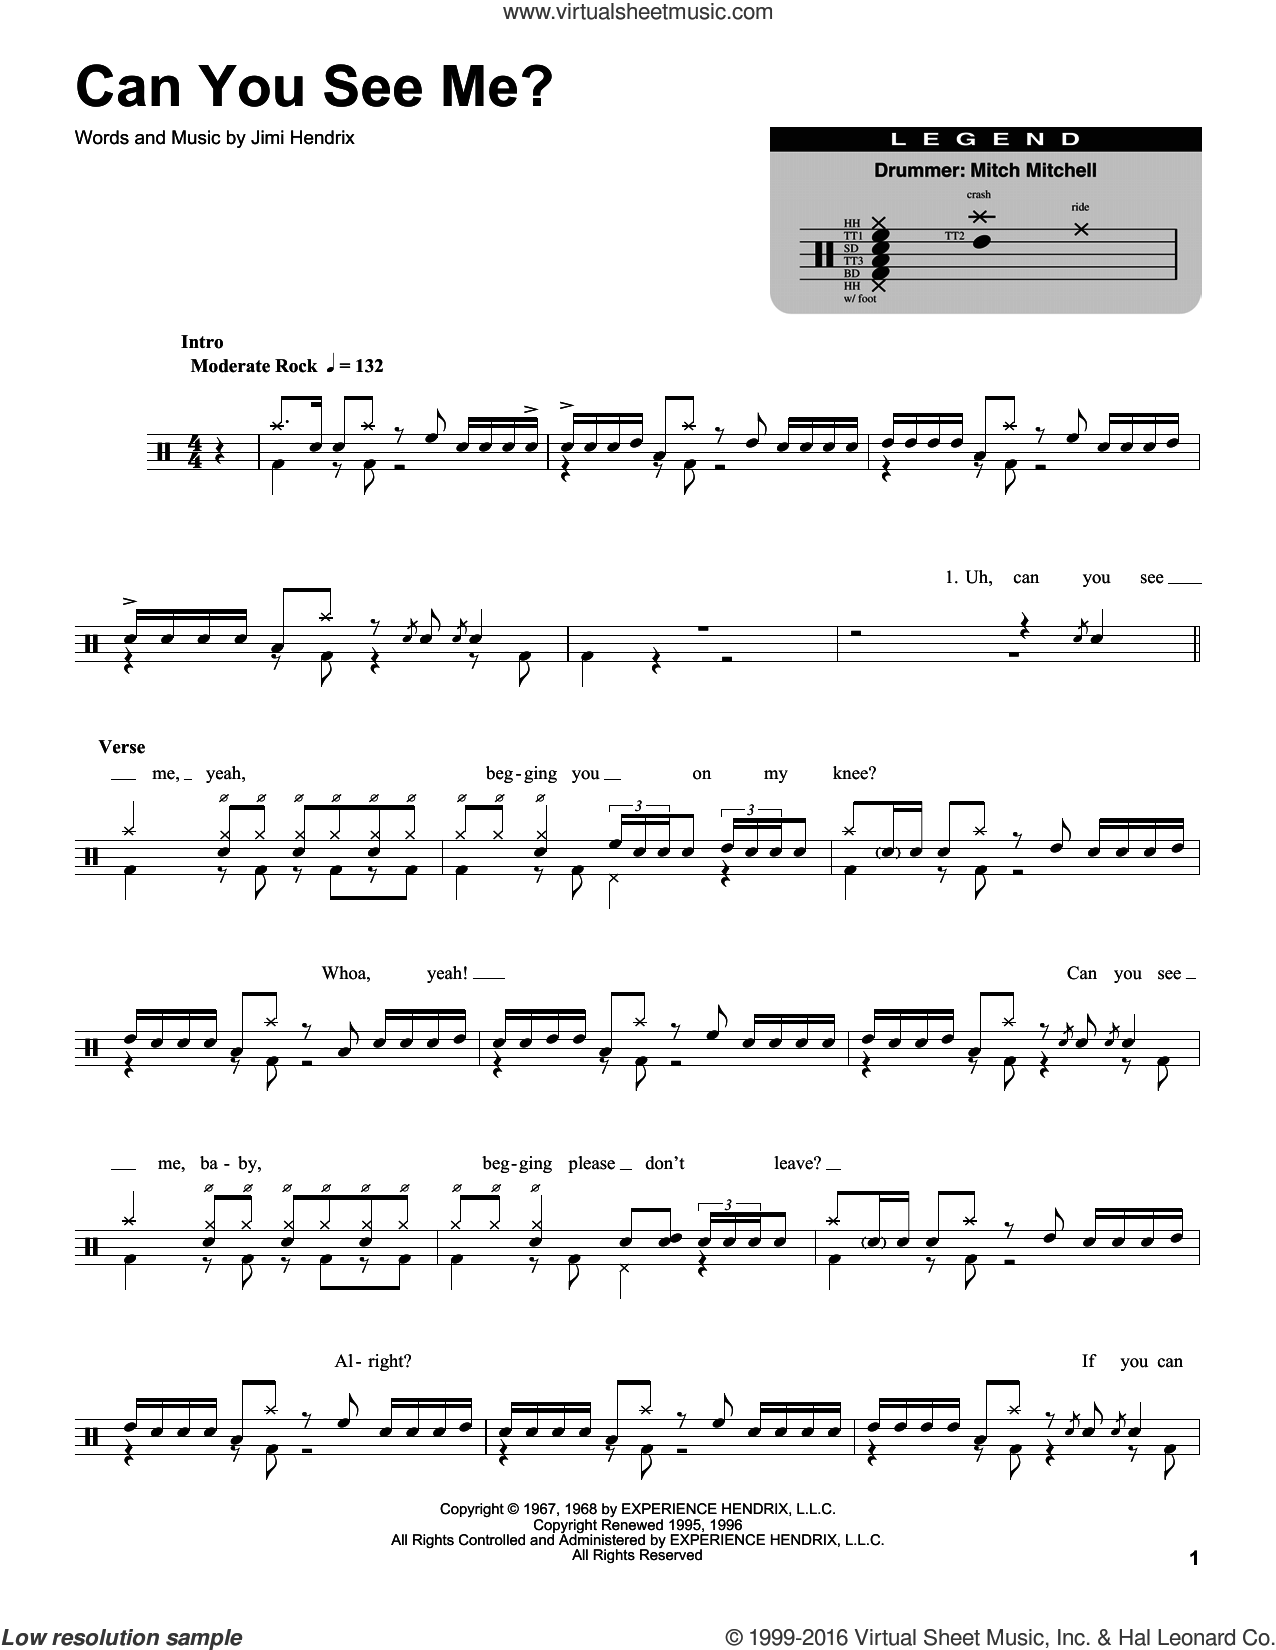 Can You See Me sheet music for drums by Jimi Hendrix